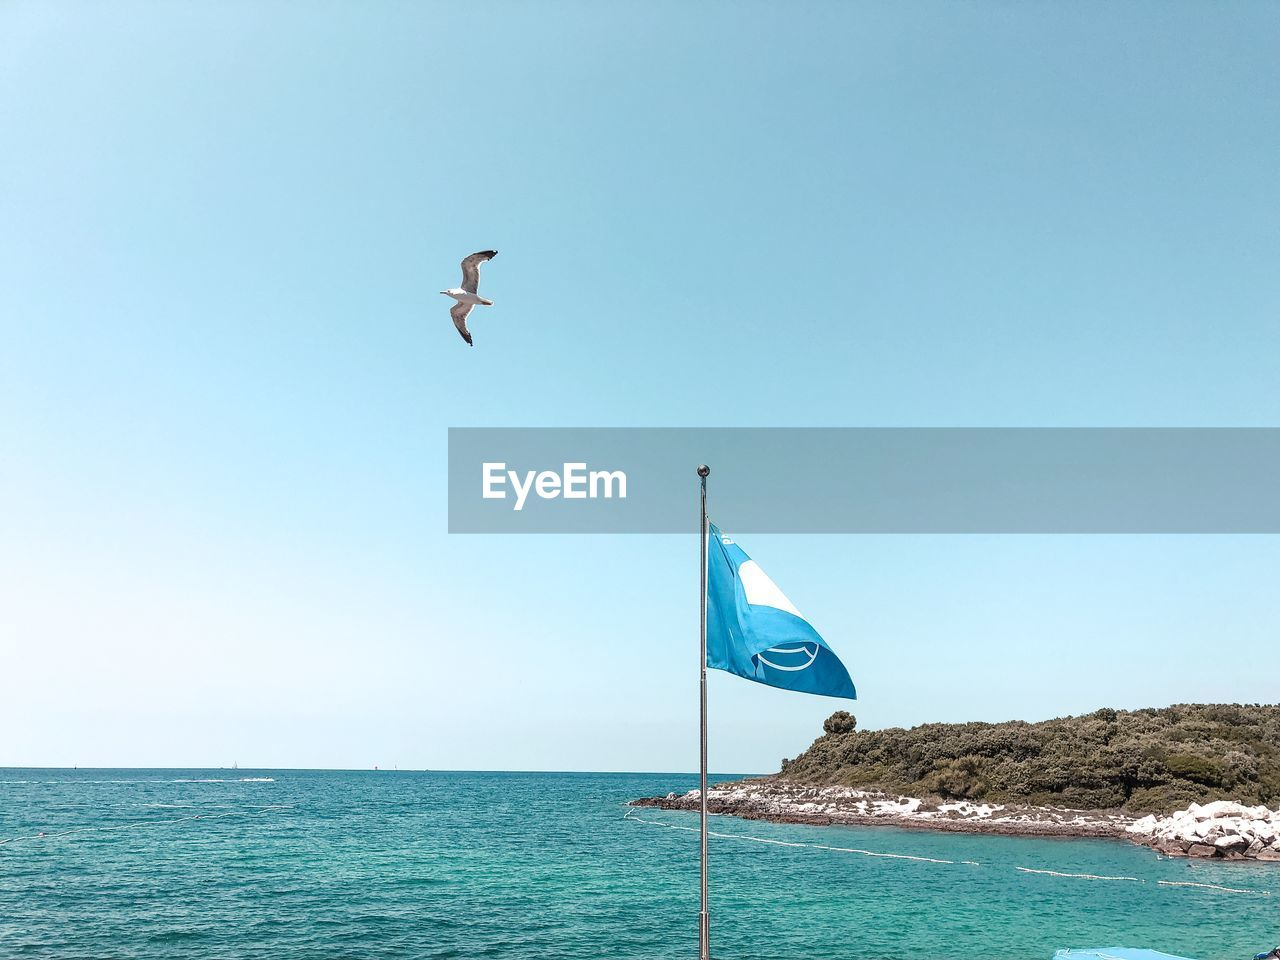 water, sky, sea, day, clear sky, flag, nature, vertebrate, copy space, animal themes, patriotism, bird, animal, animals in the wild, blue, flying, beauty in nature, no people, freedom, horizon over water, outdoors, wind, independence, national icon, seagull